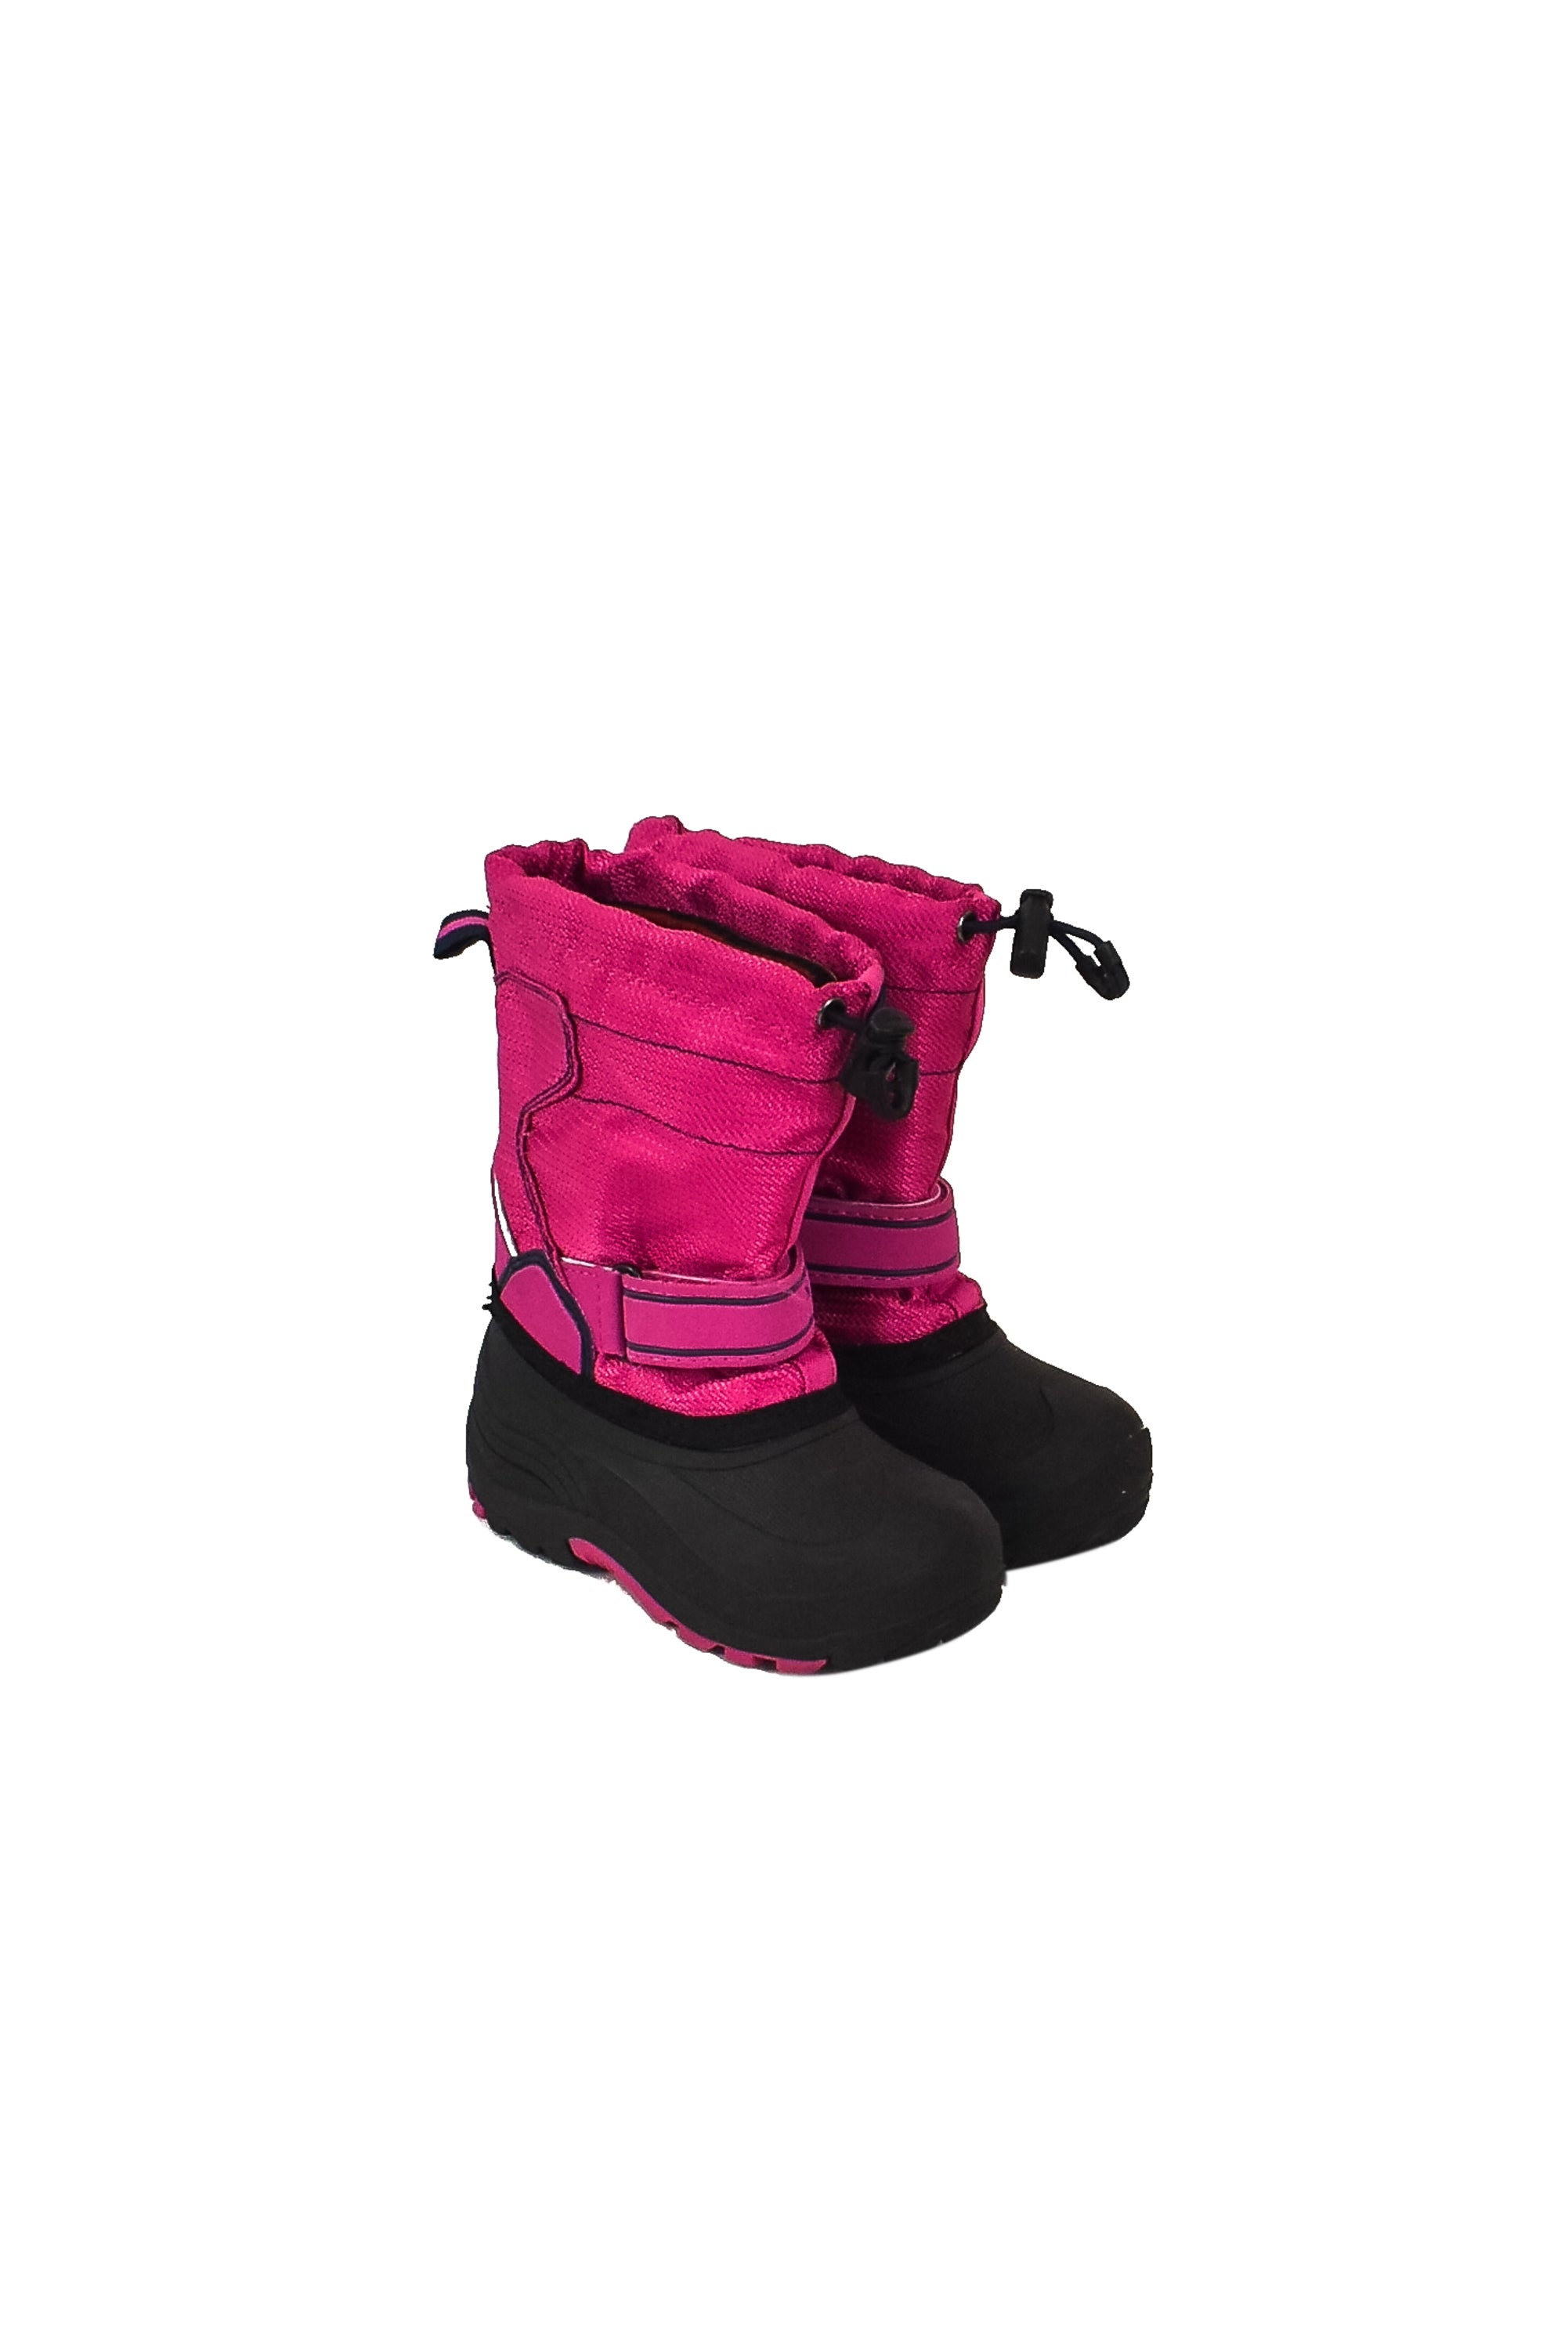 10033532 Kamik Kids~Boots 4T (US 10) at Retykle